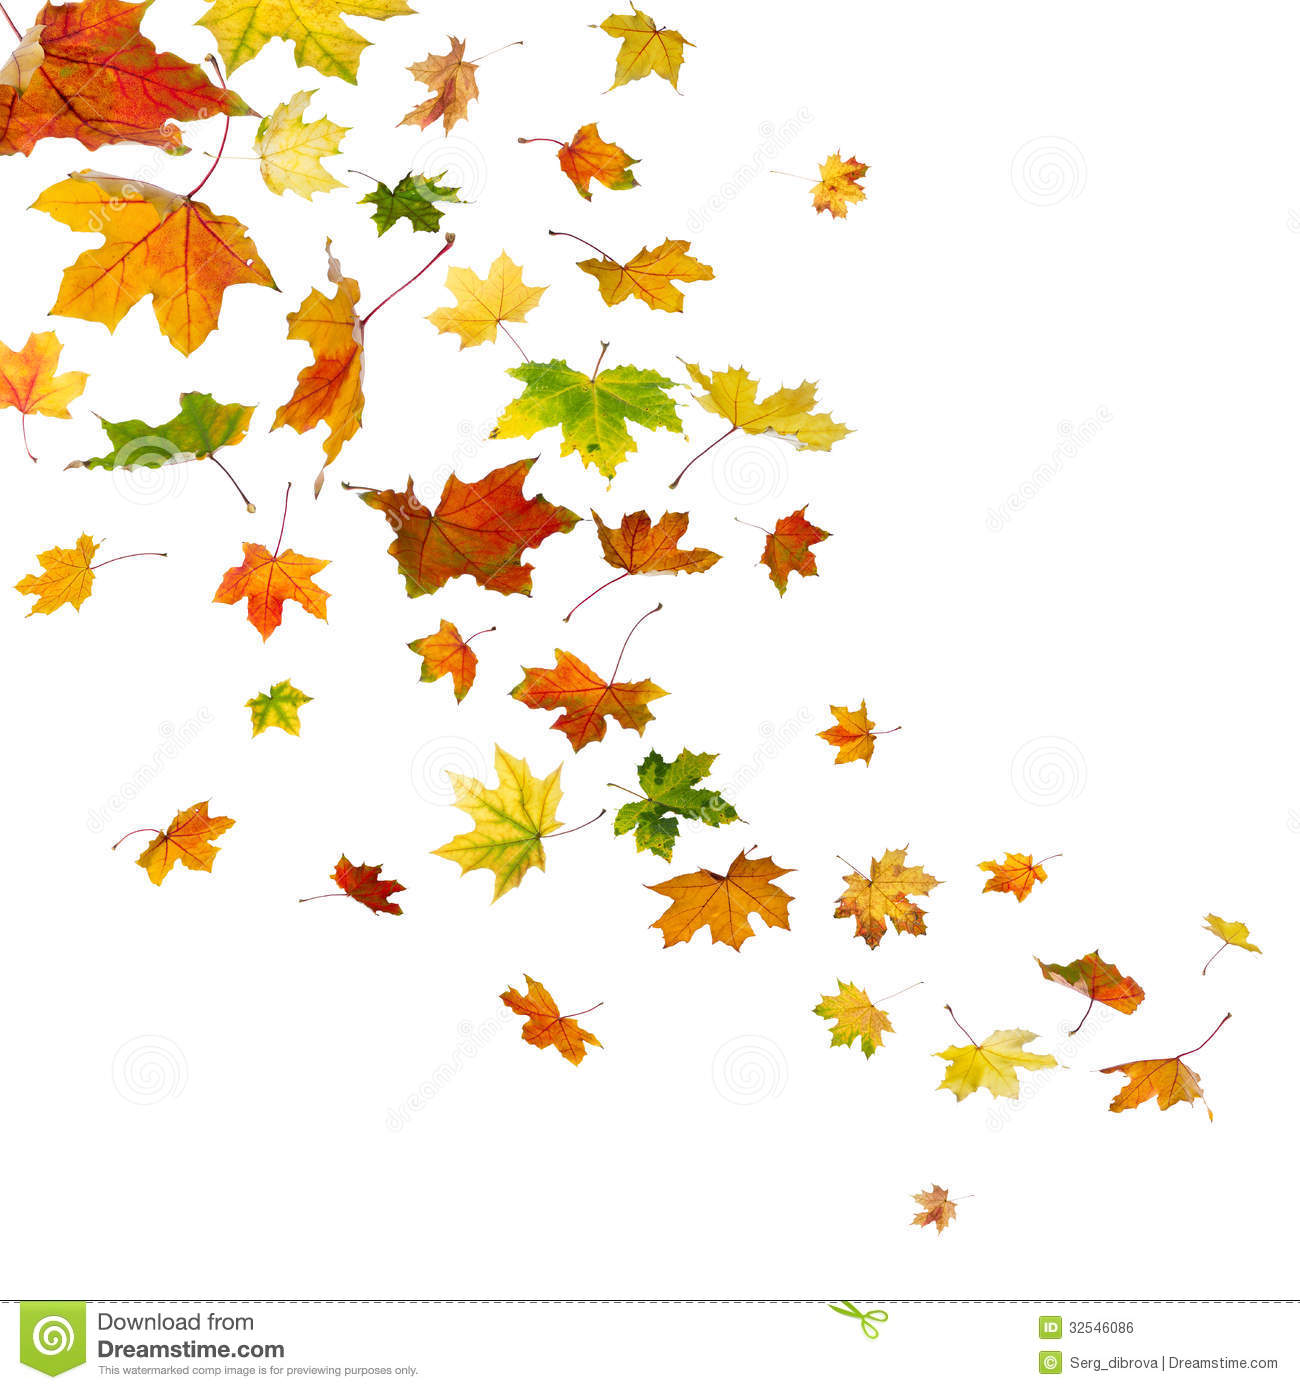 Animated falling leaves clipart.